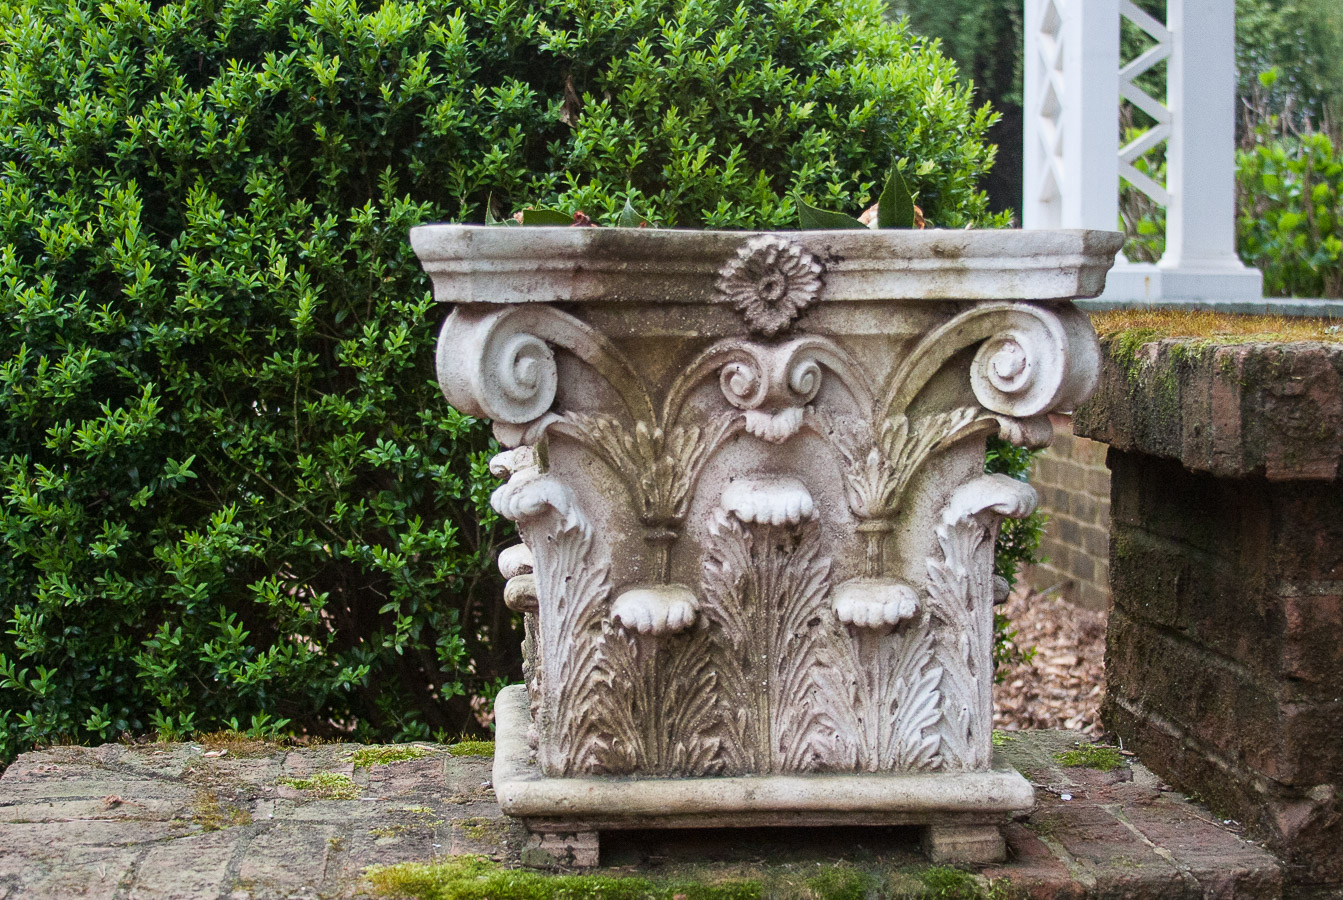 Knowleton-garden-ornament (1 of 1).jpg